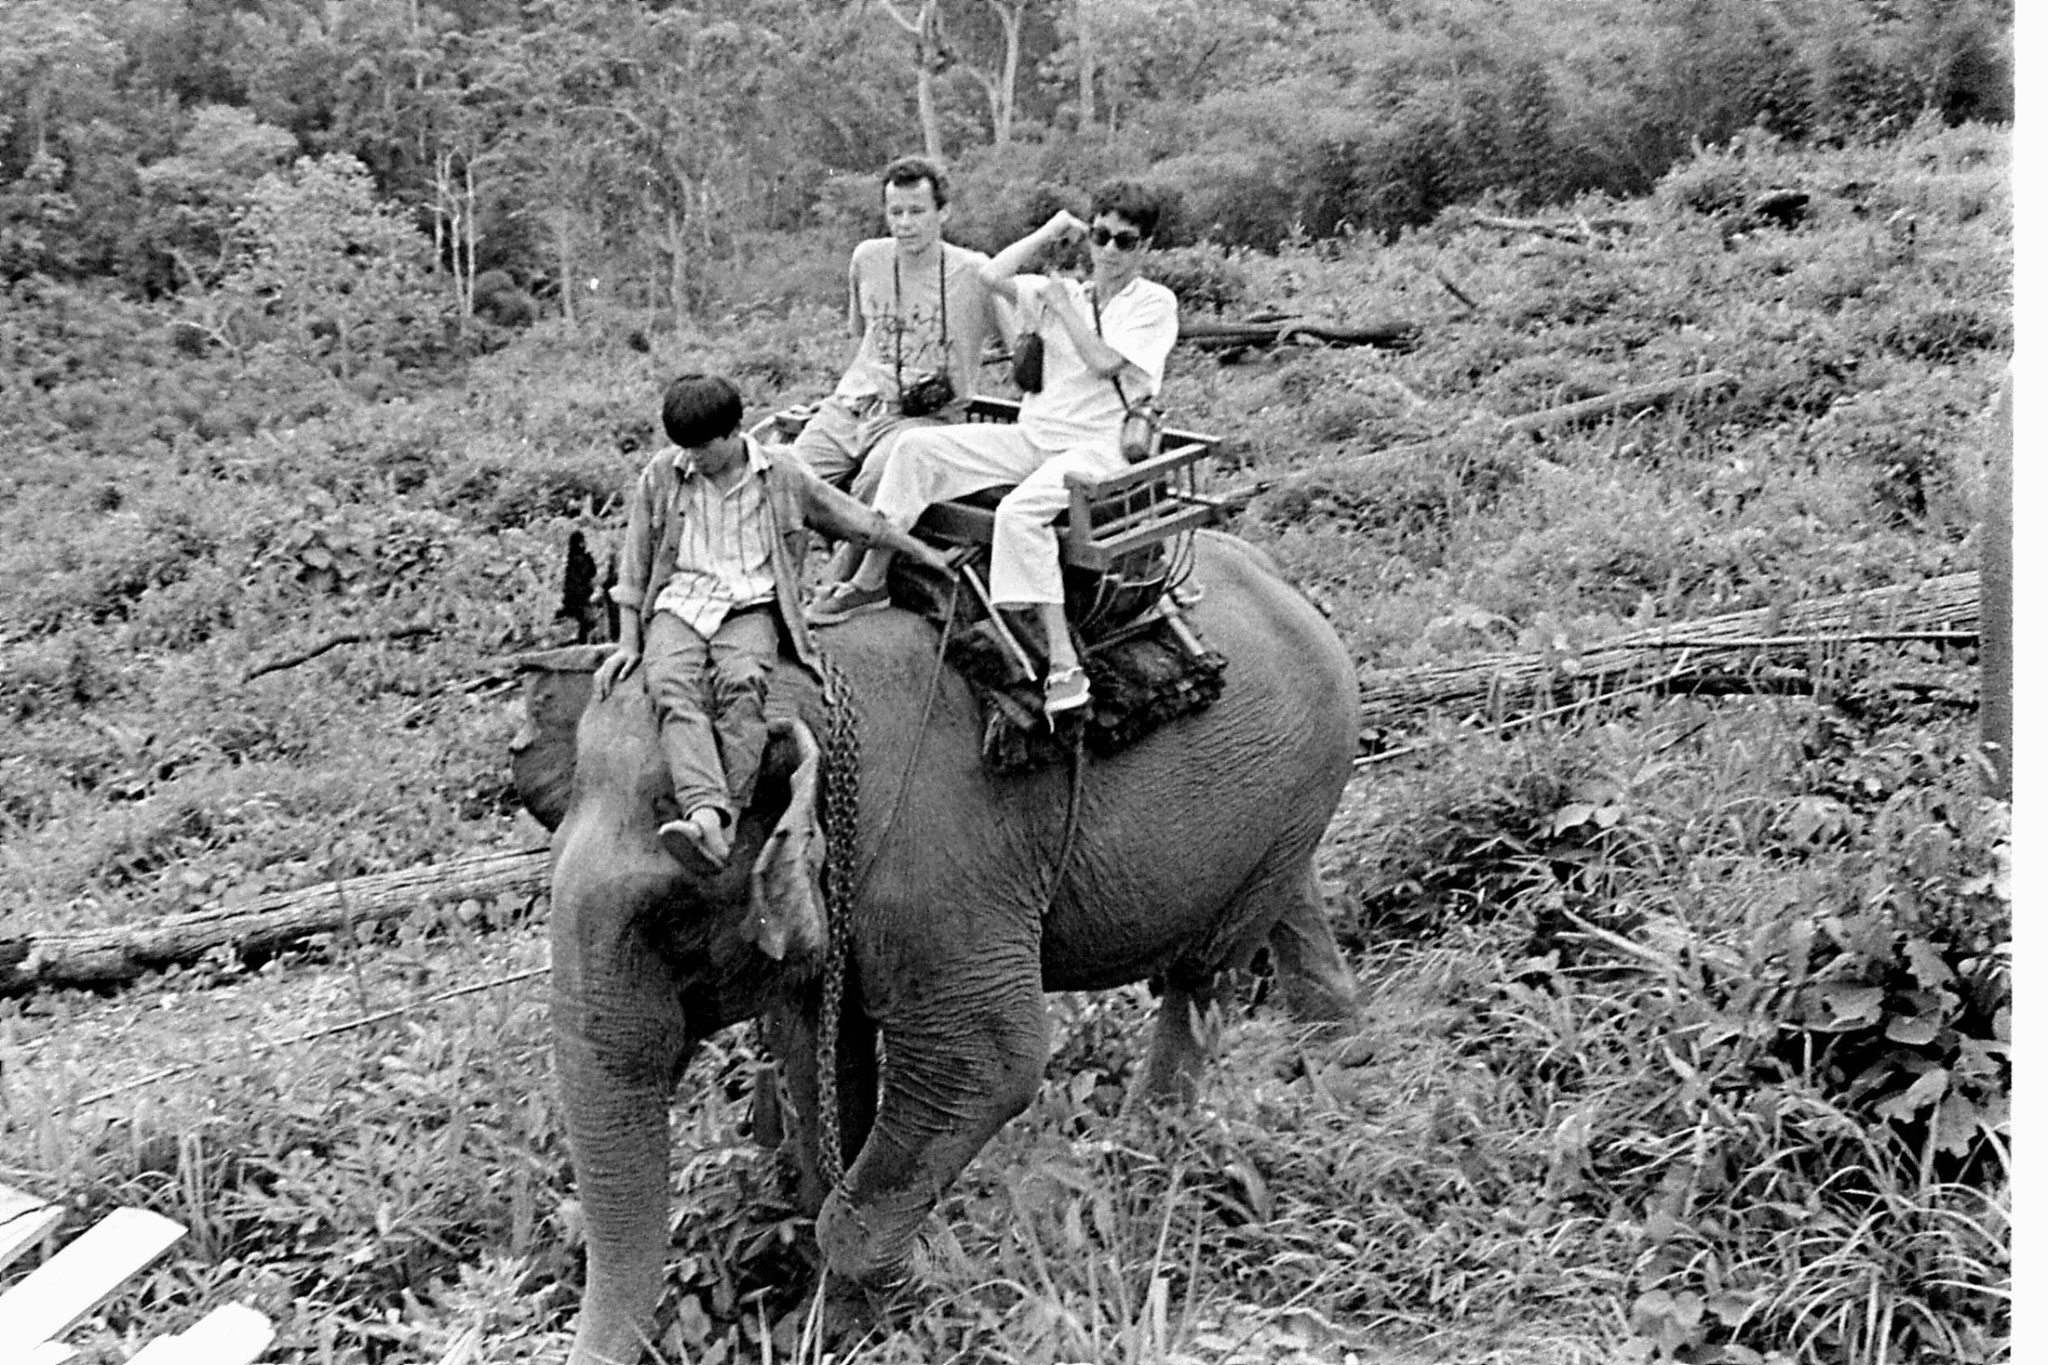 13/6/1990: 30: Last day of Trek, on elephant